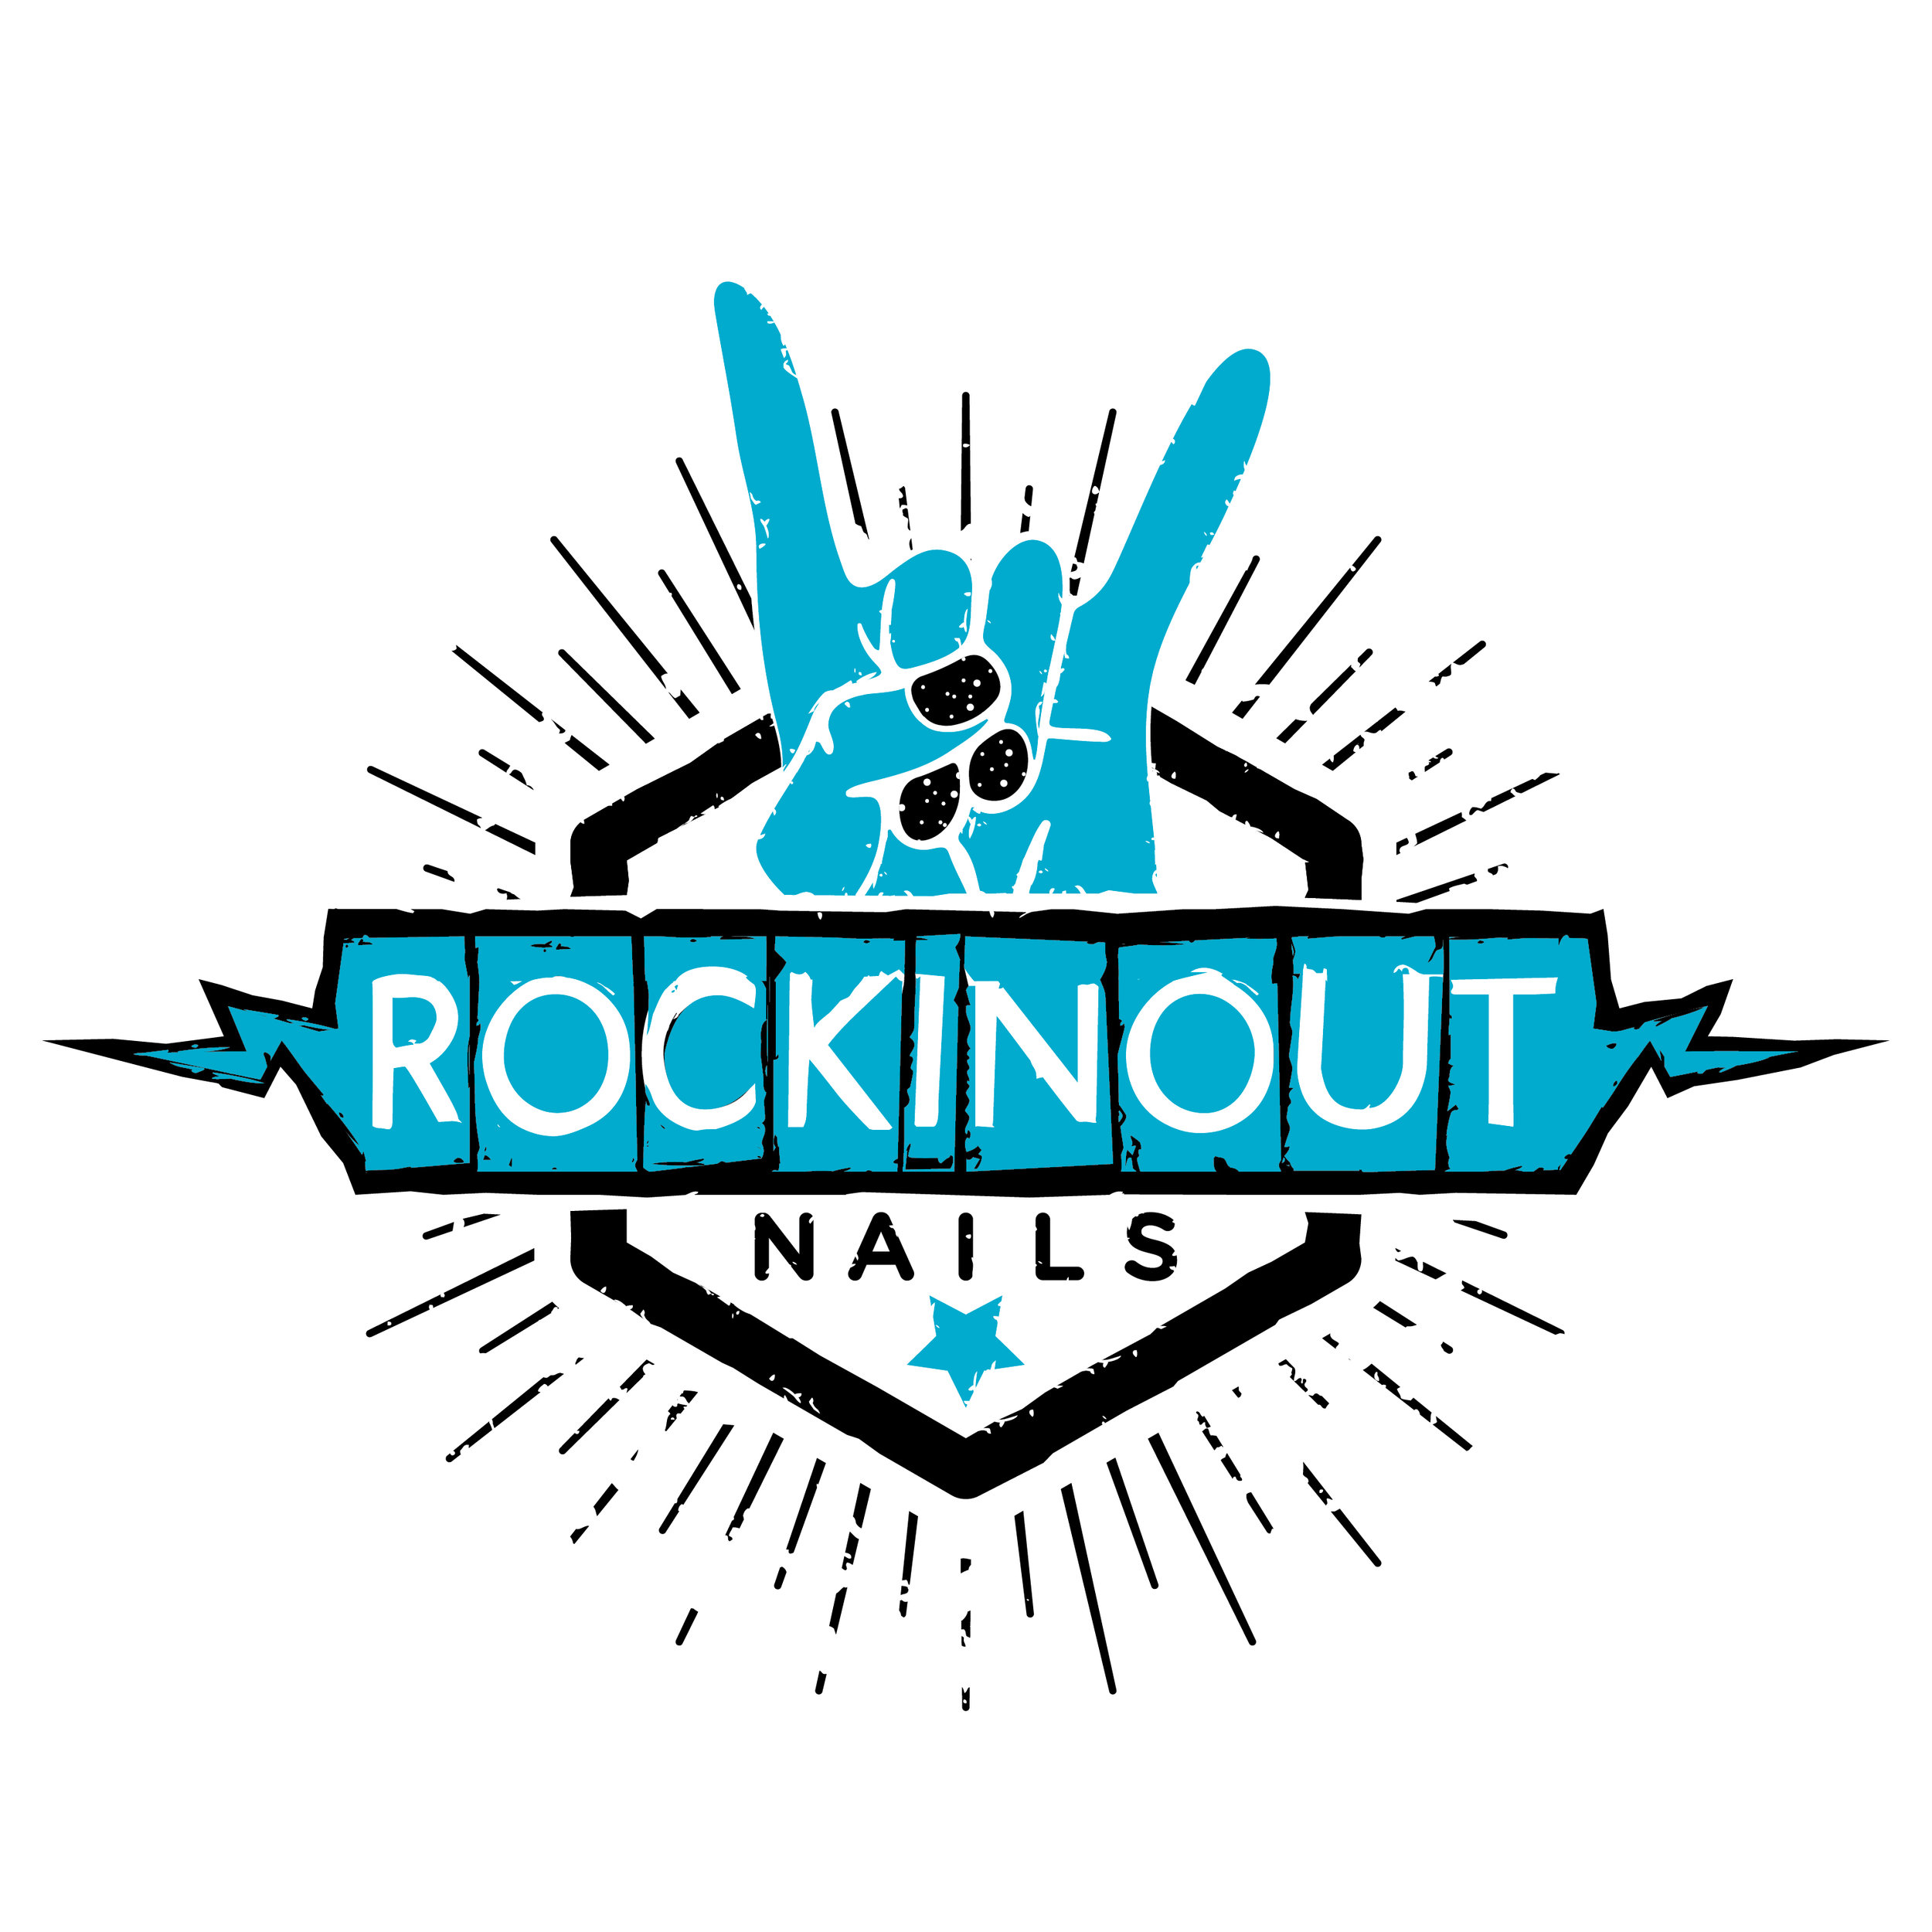 RockinOutNails LOGO-11.jpg